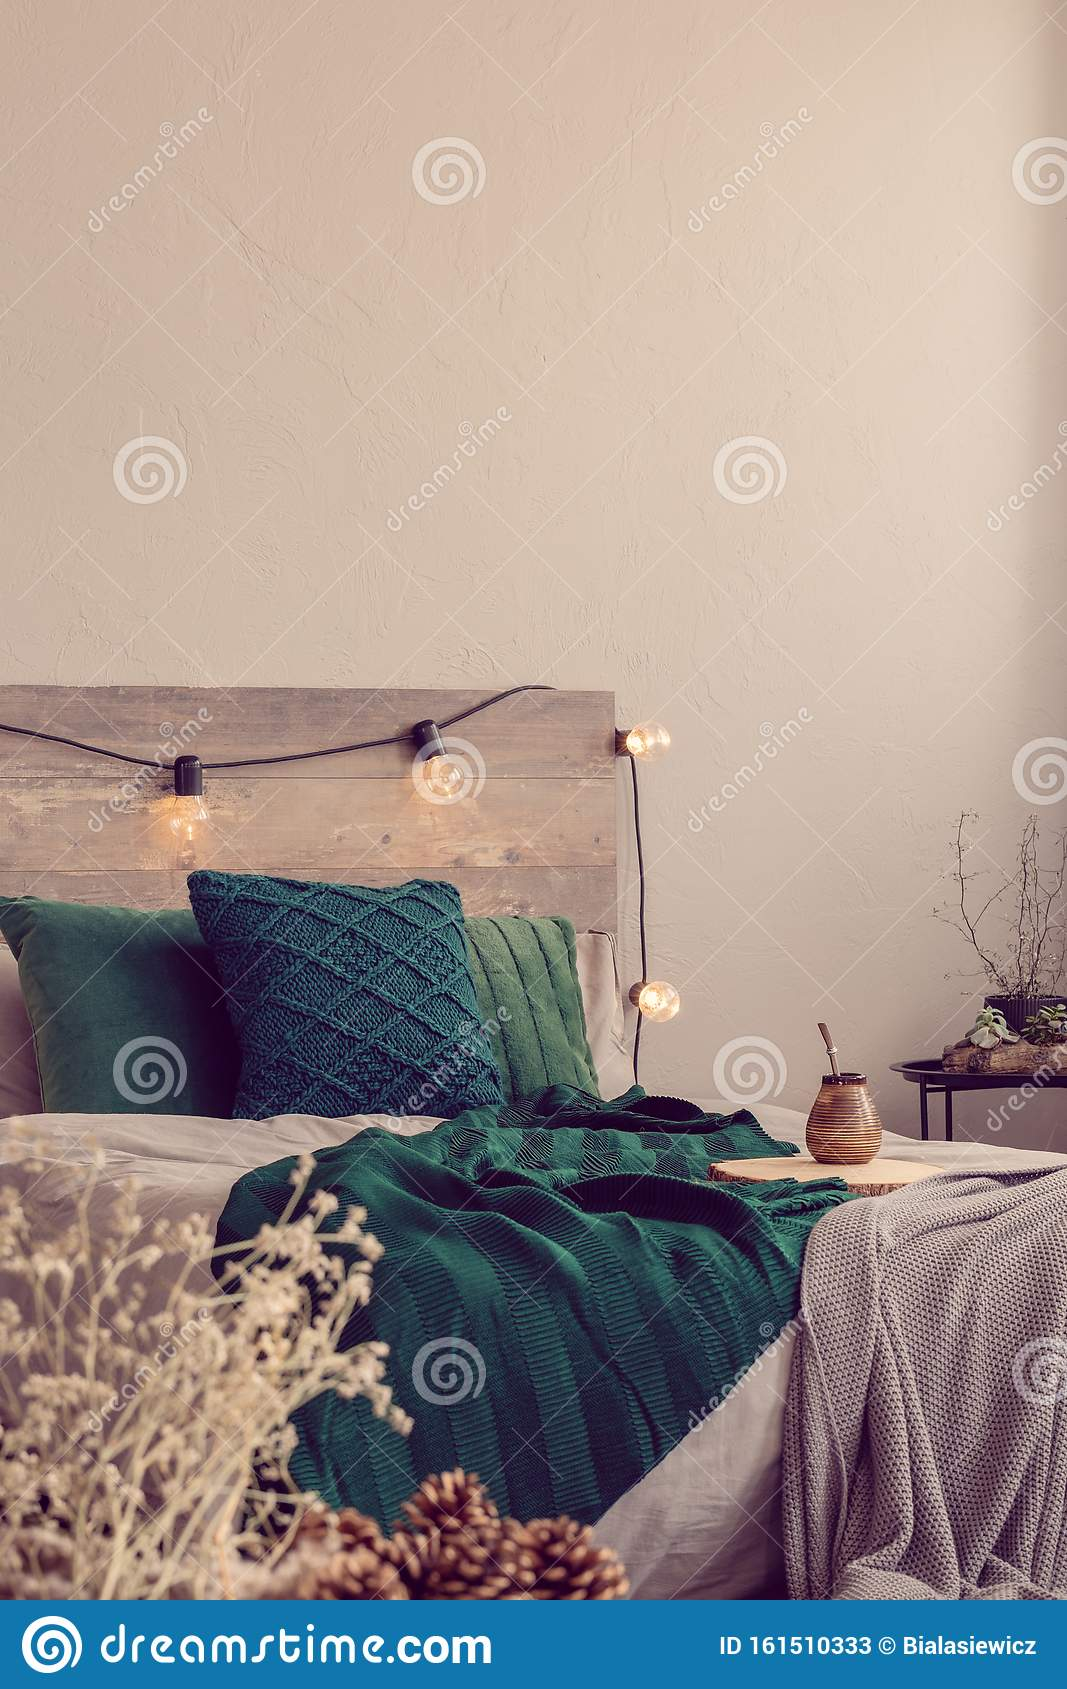 Grey Bedroom With Fashionable Bed With Emerald Green And Grey Bedding Stock Image Image Of Comfy Condo 161510333